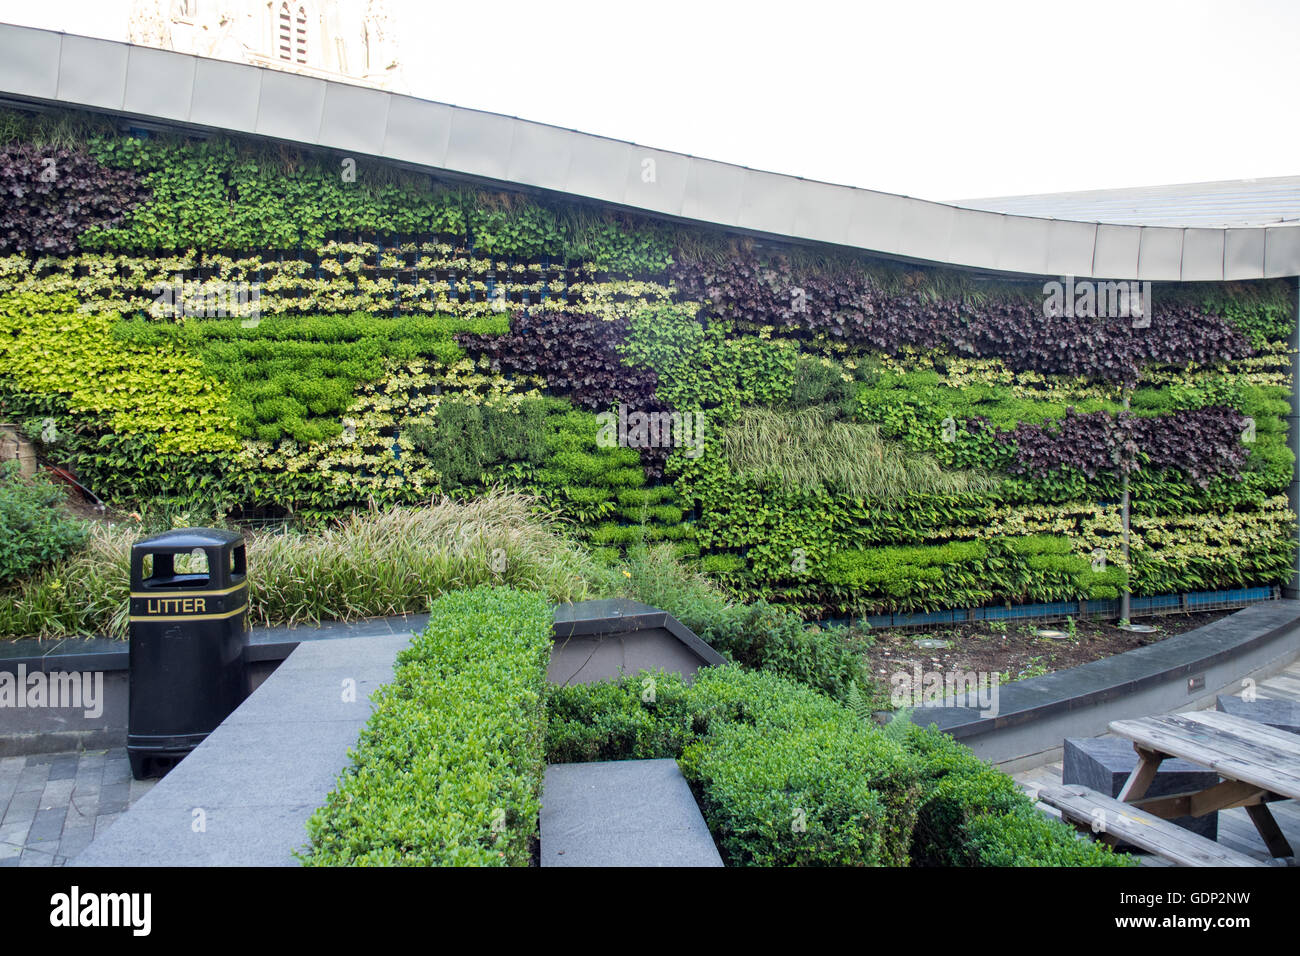 Attractive A Vertical Garden Of Vines And Hedges.   Stock Image